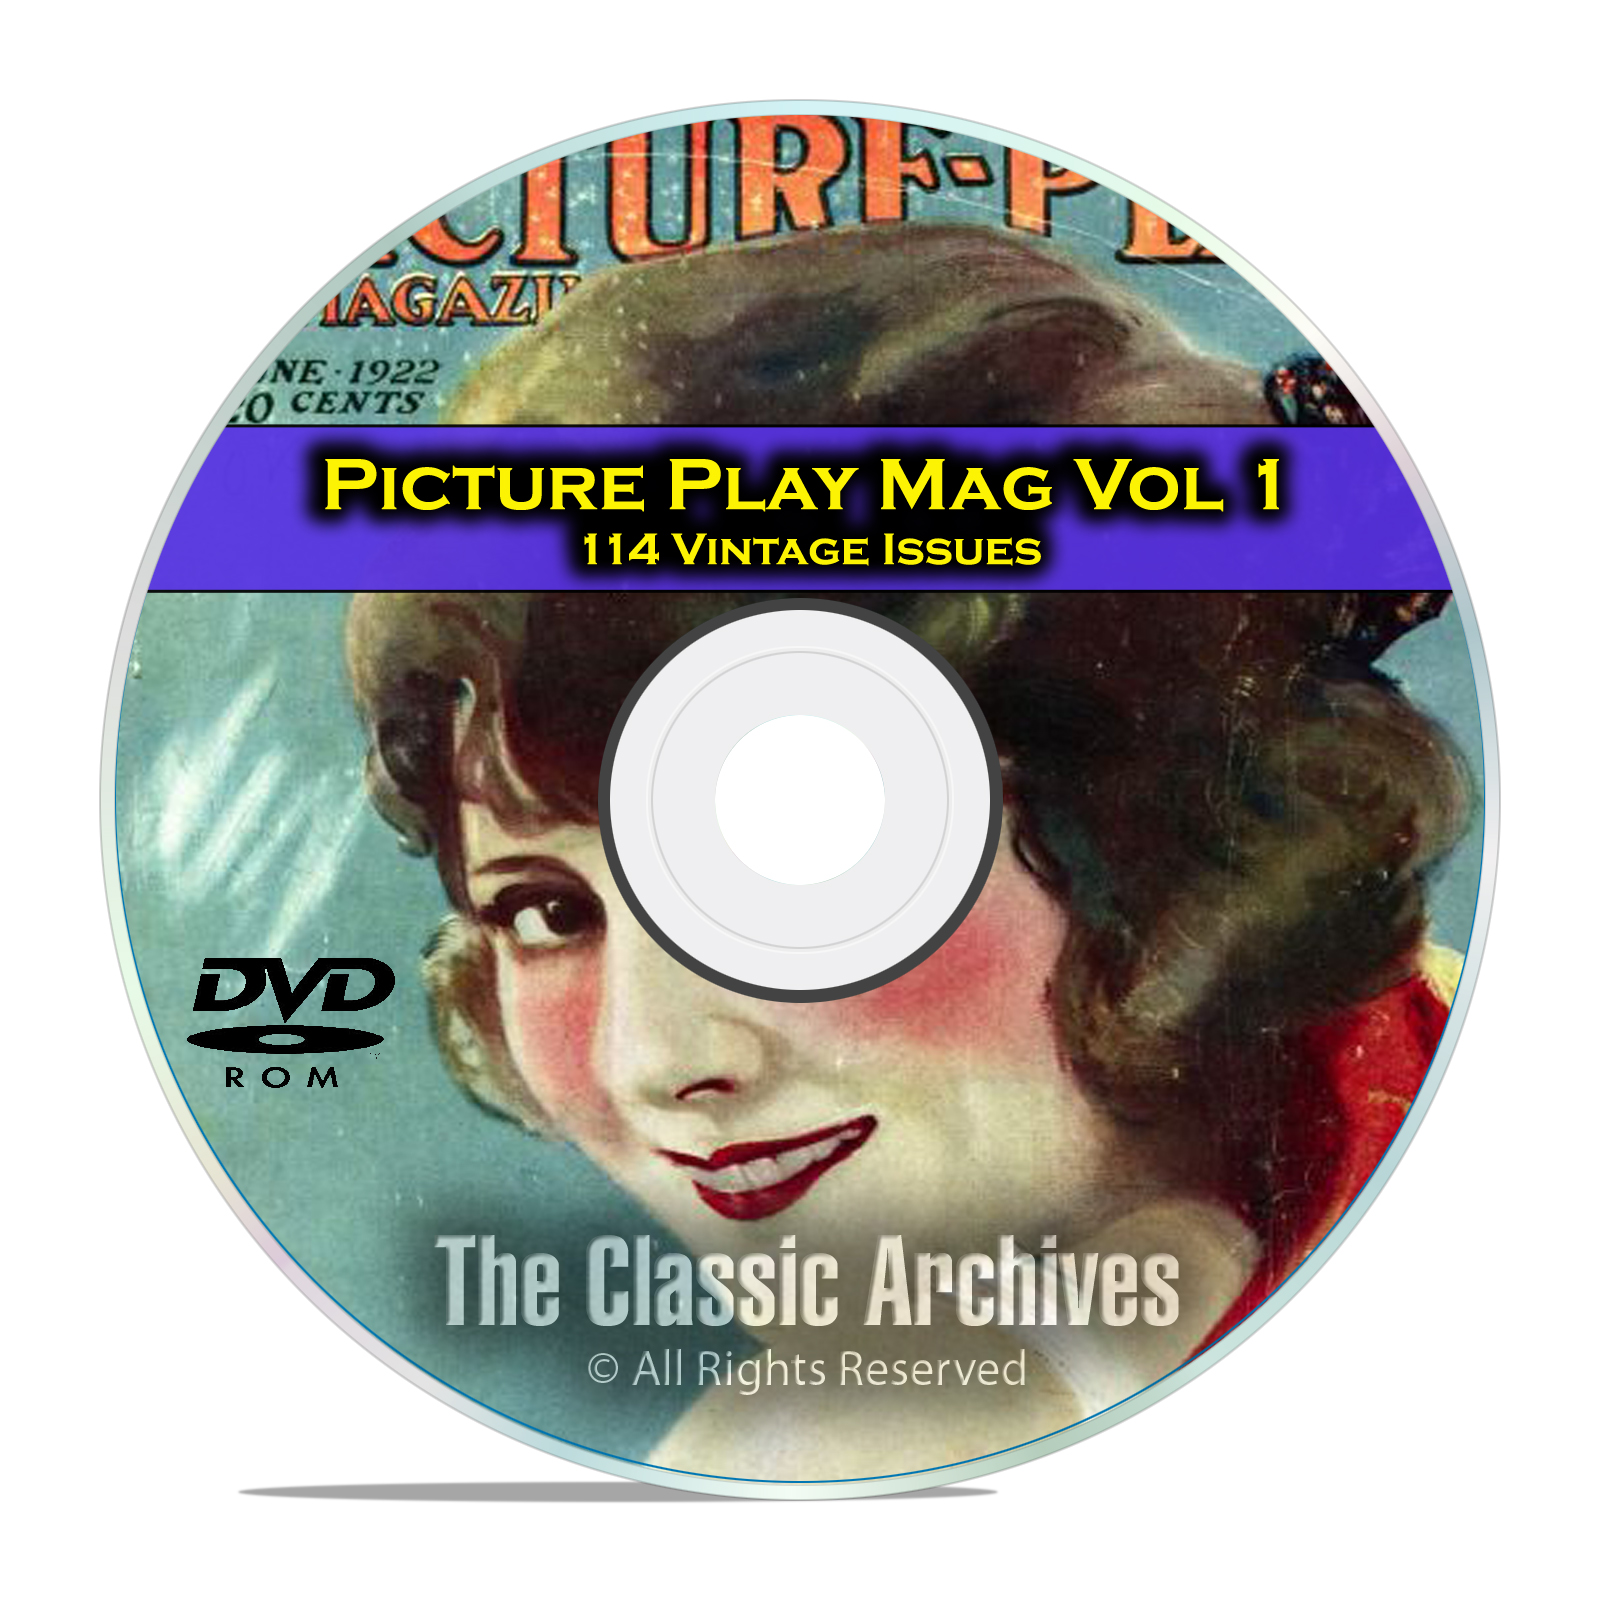 Picture Play Magazine, Vol 1, 114 Issues, Golden Age of Hollywood, DVD